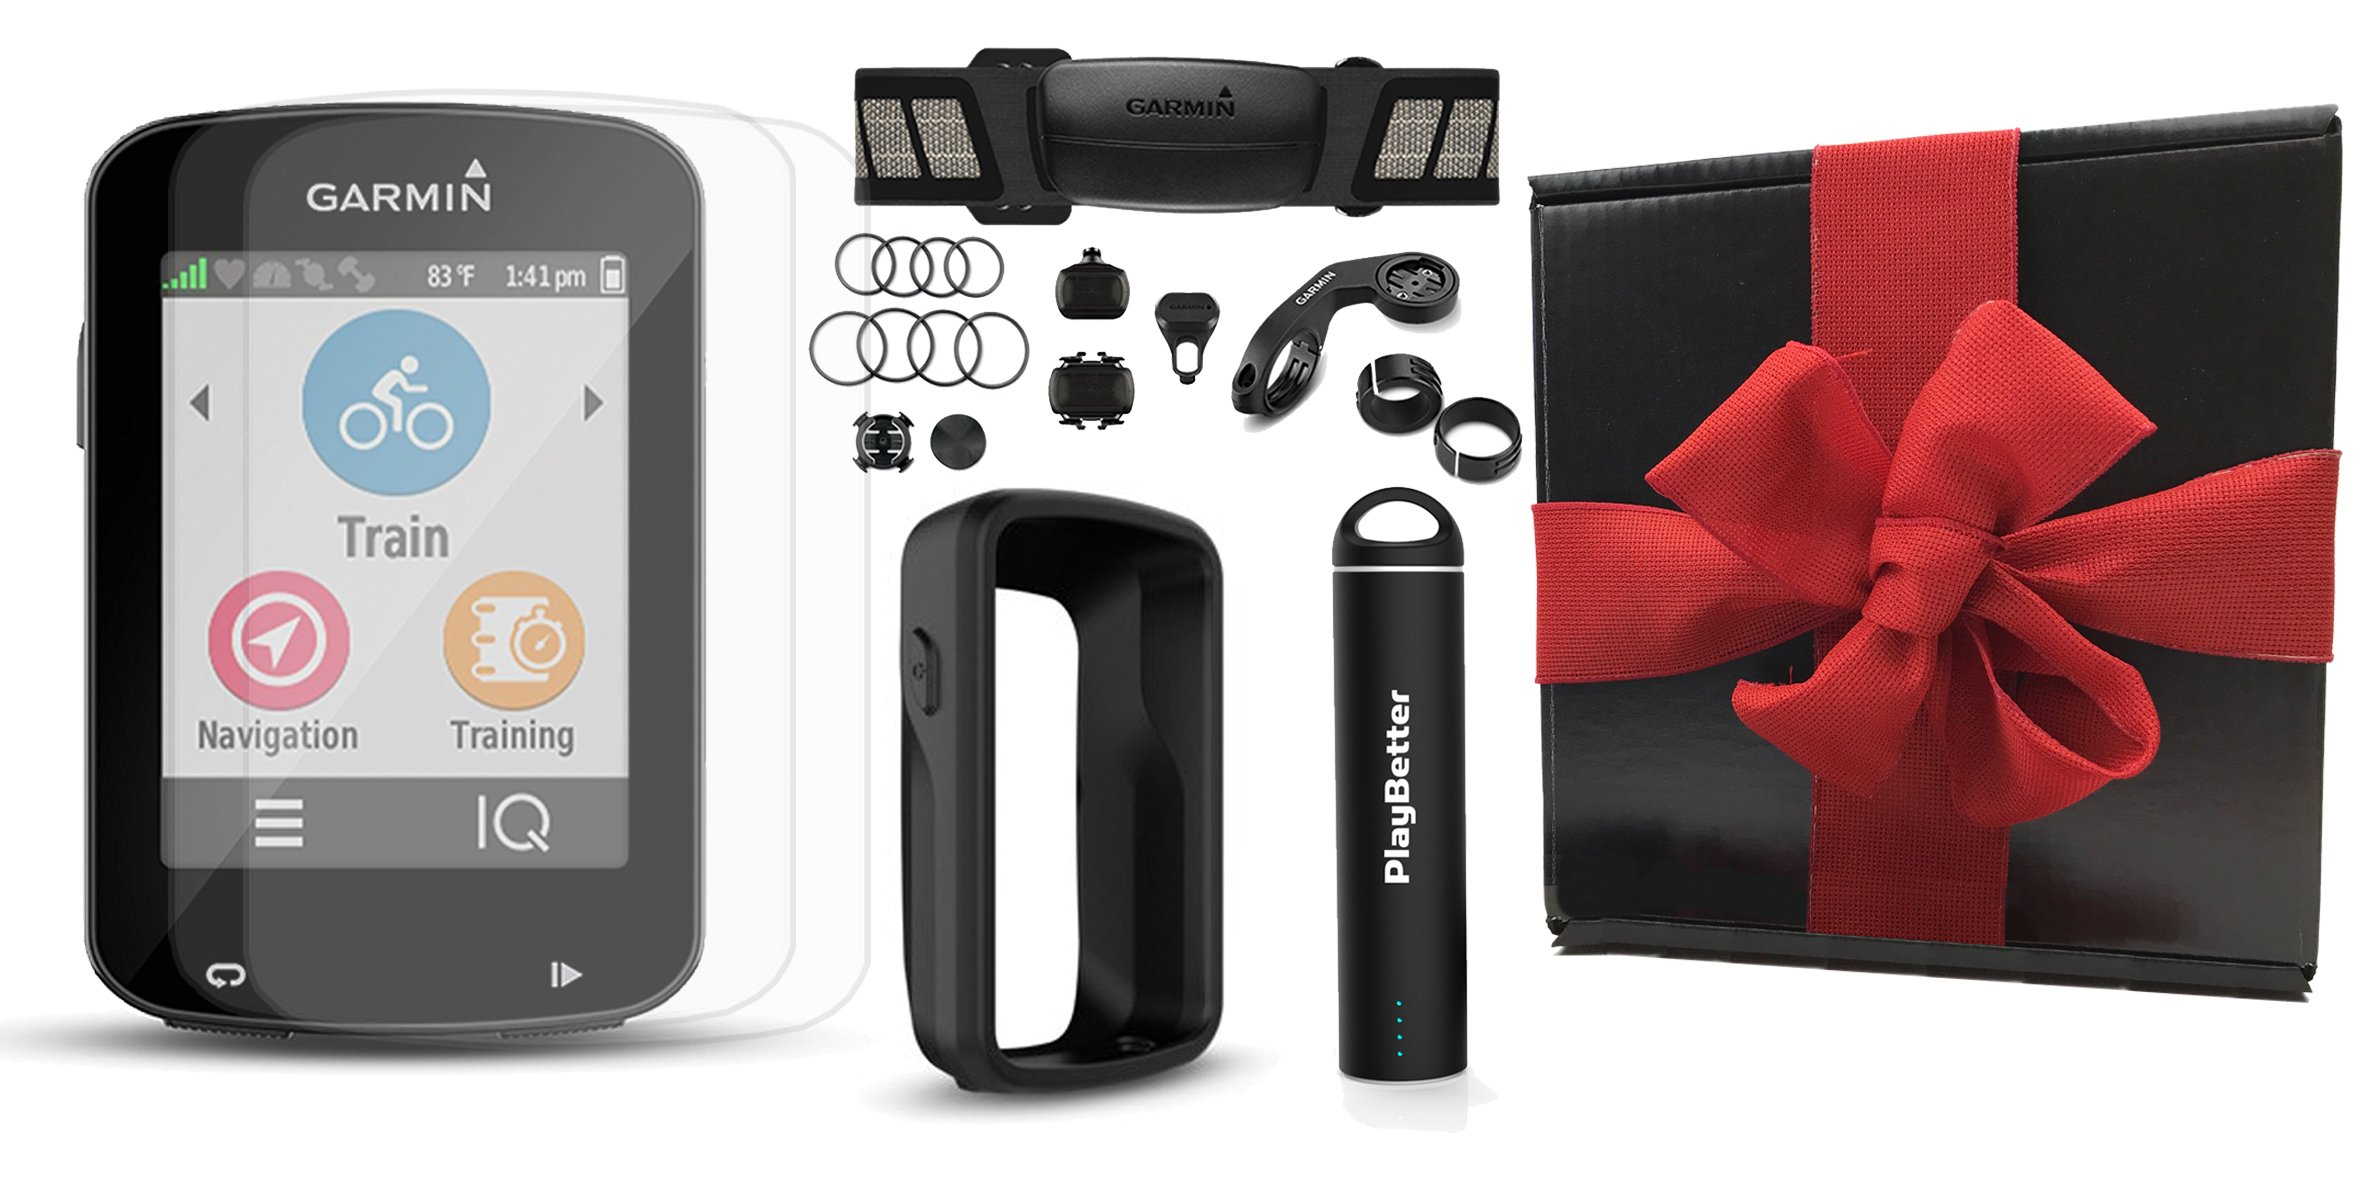 Garmin Edge 820 Gift Box Bundle with PlayBetter Silicone Protective Case, HD Glass Screen Protectors (2-Pack), Portable Charger, Bike Mounts | GPS Cycle Computer (Black Case, Bundle w/ HRM & Sensors)